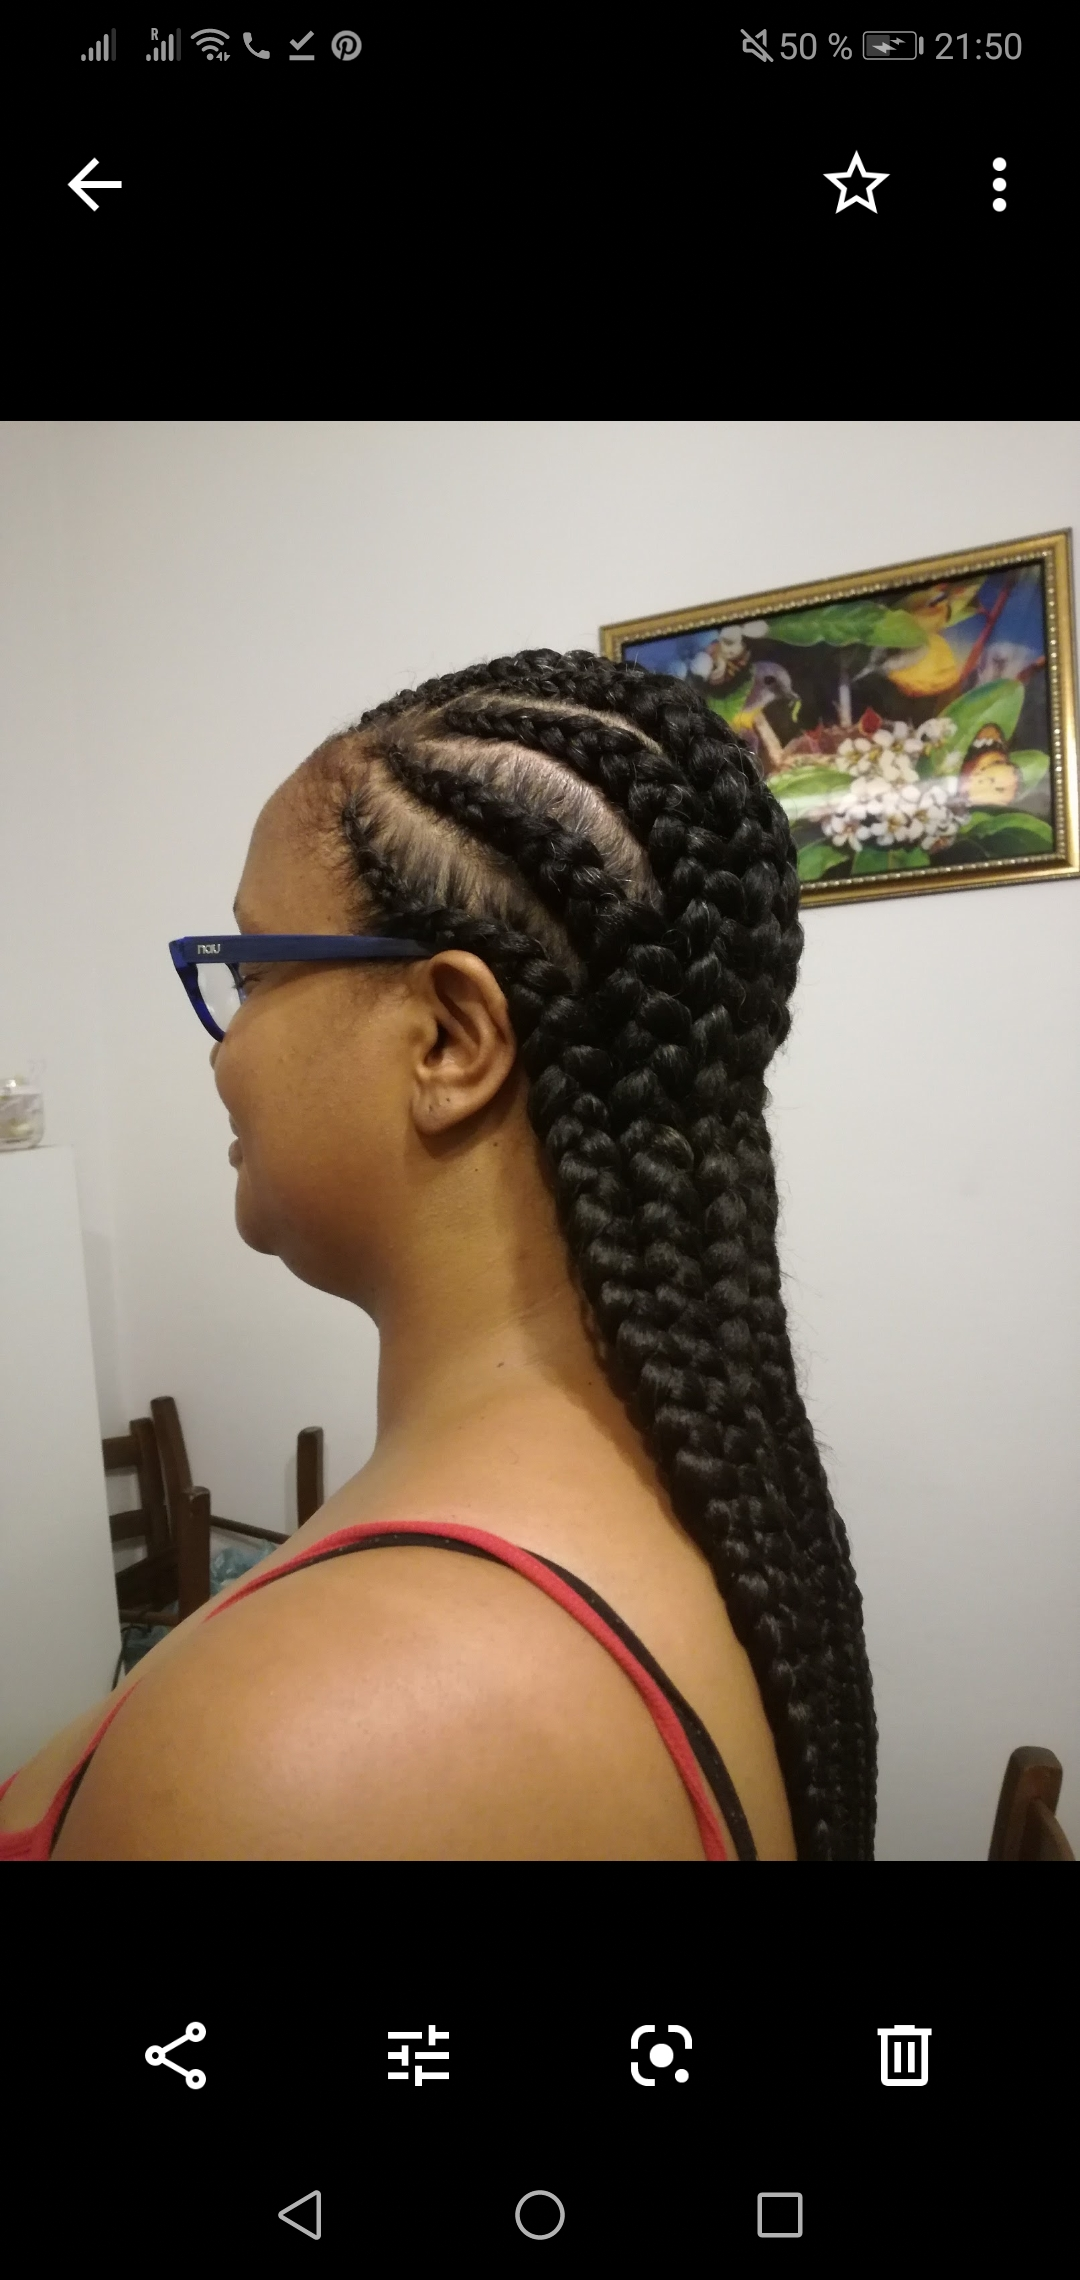 salon de coiffure afro tresse tresses box braids crochet braids vanilles tissages paris 75 77 78 91 92 93 94 95 BWZSJKCC